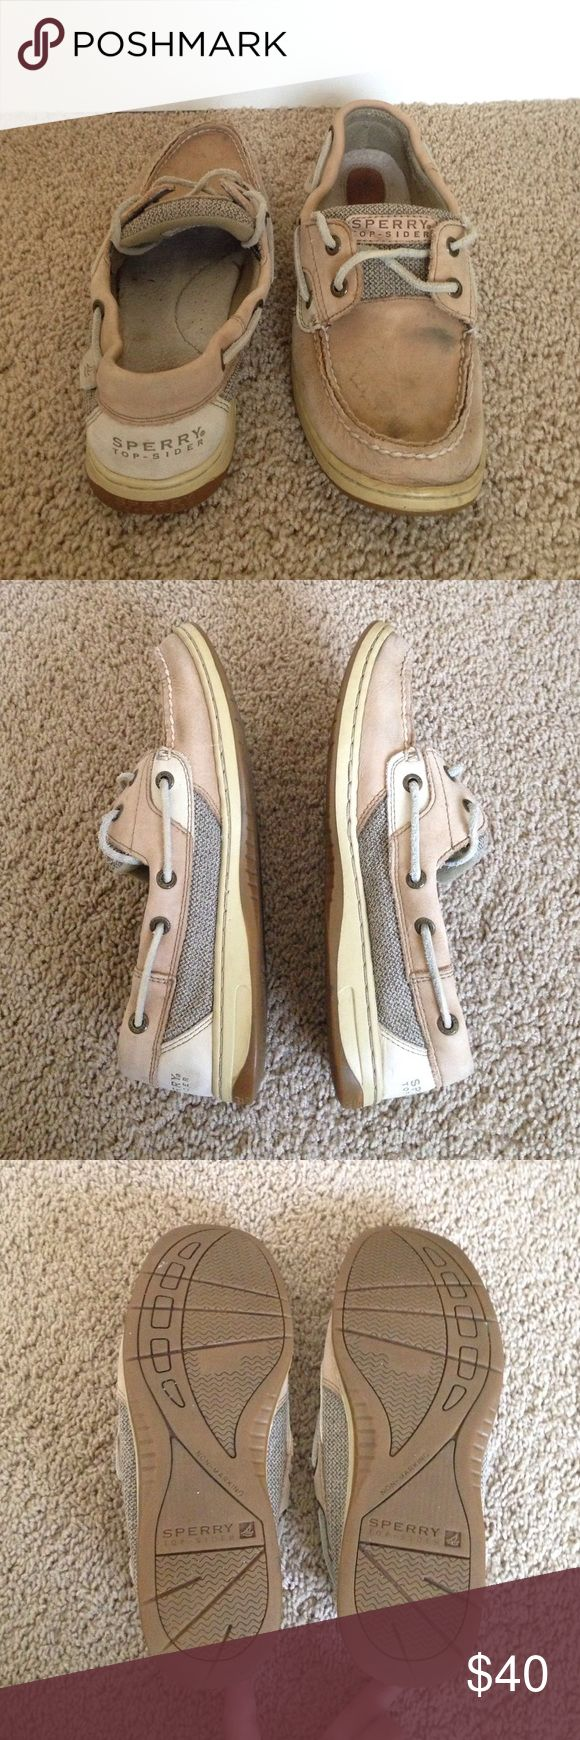 Classic Sperry's Boat Shoe Classic women's boat shoe purchased from the Sperry store. Very comfortable shoes, worn a few times, still in overall good condition!  🔸Make an offer or bundle to save extra!🔸 Sperry Top-Sider Shoes Sneakers